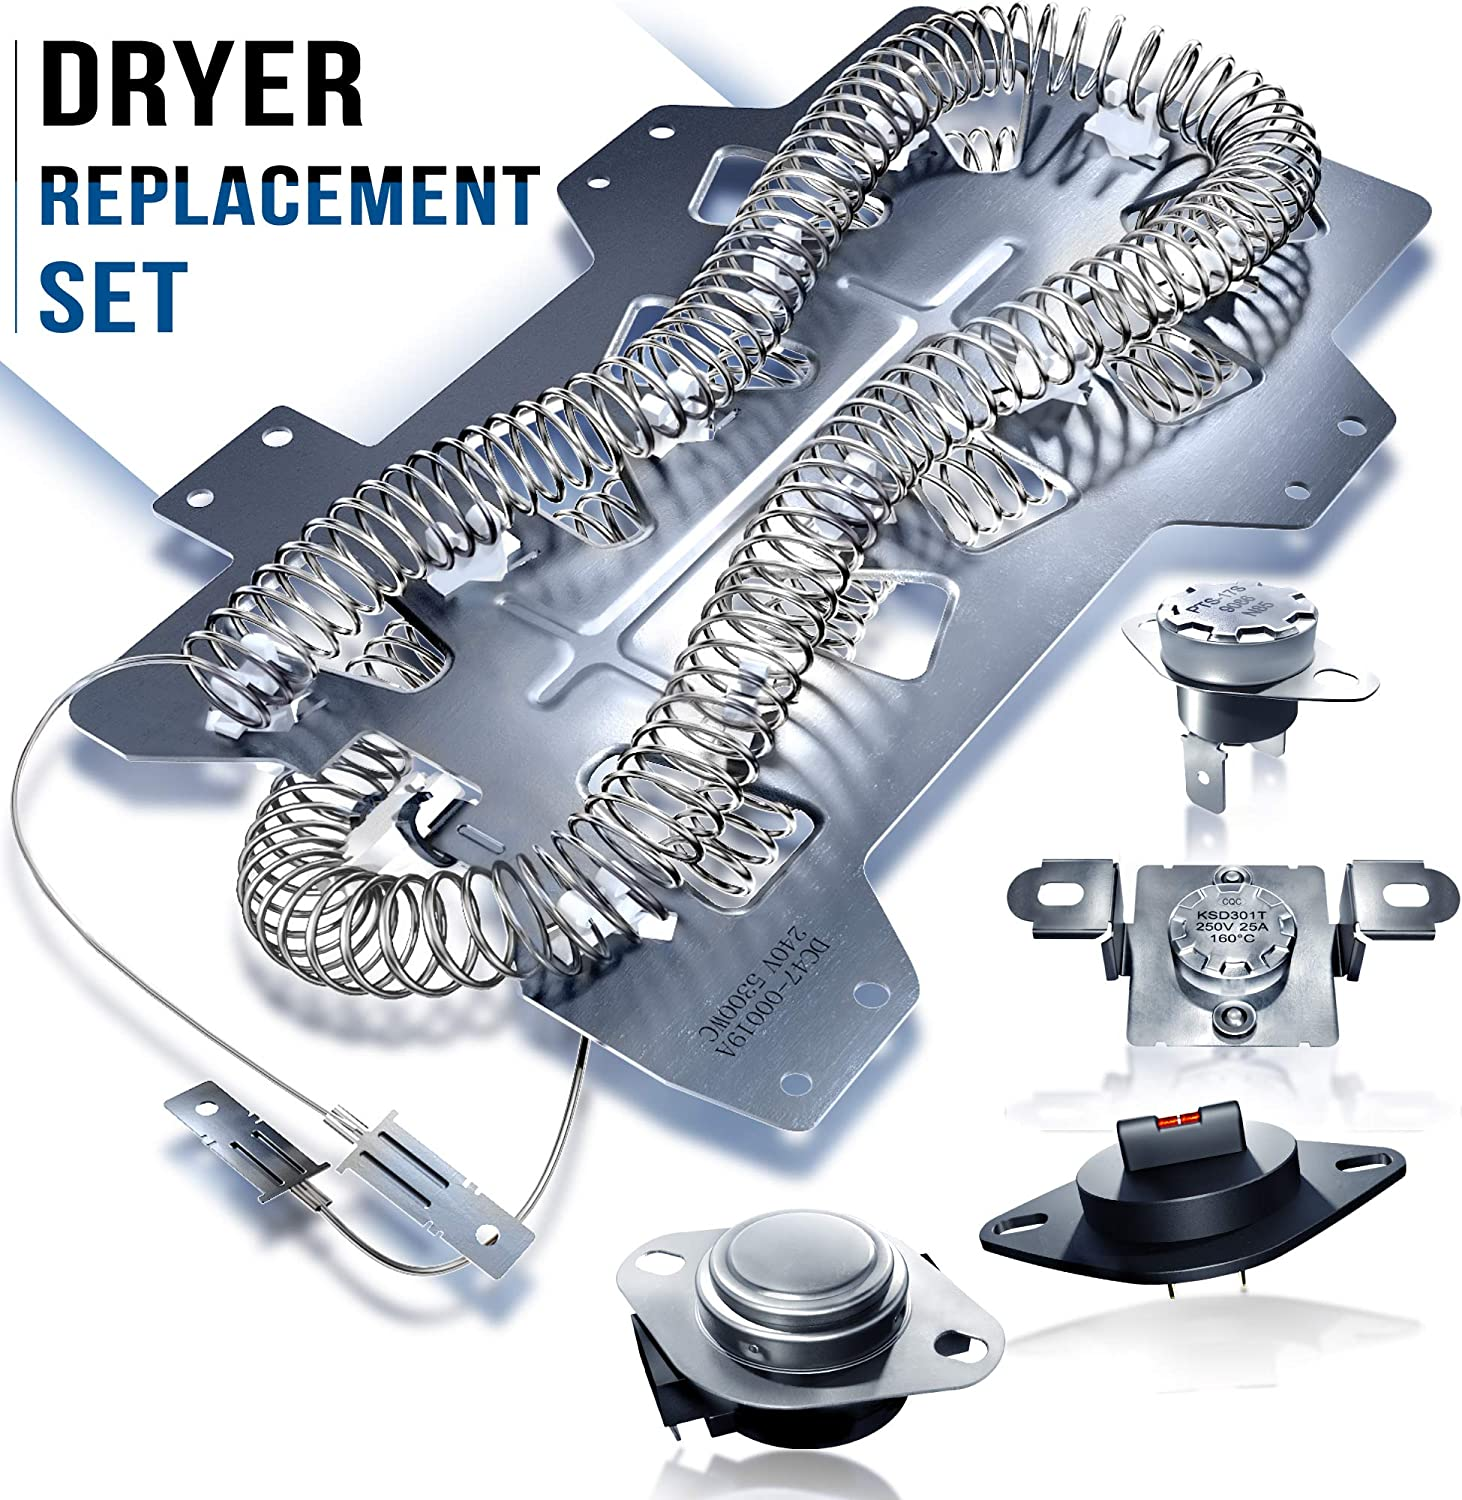 Rightex Dryer Heating Element DC47-00019A for Samsung Dryer - Thermal Fuse DC96-00887A and DC47-00016A - Dryer Thermistor DC32-00007A - Thermostat DC47-00018A - Dryer Repair Kit Replacement Parts